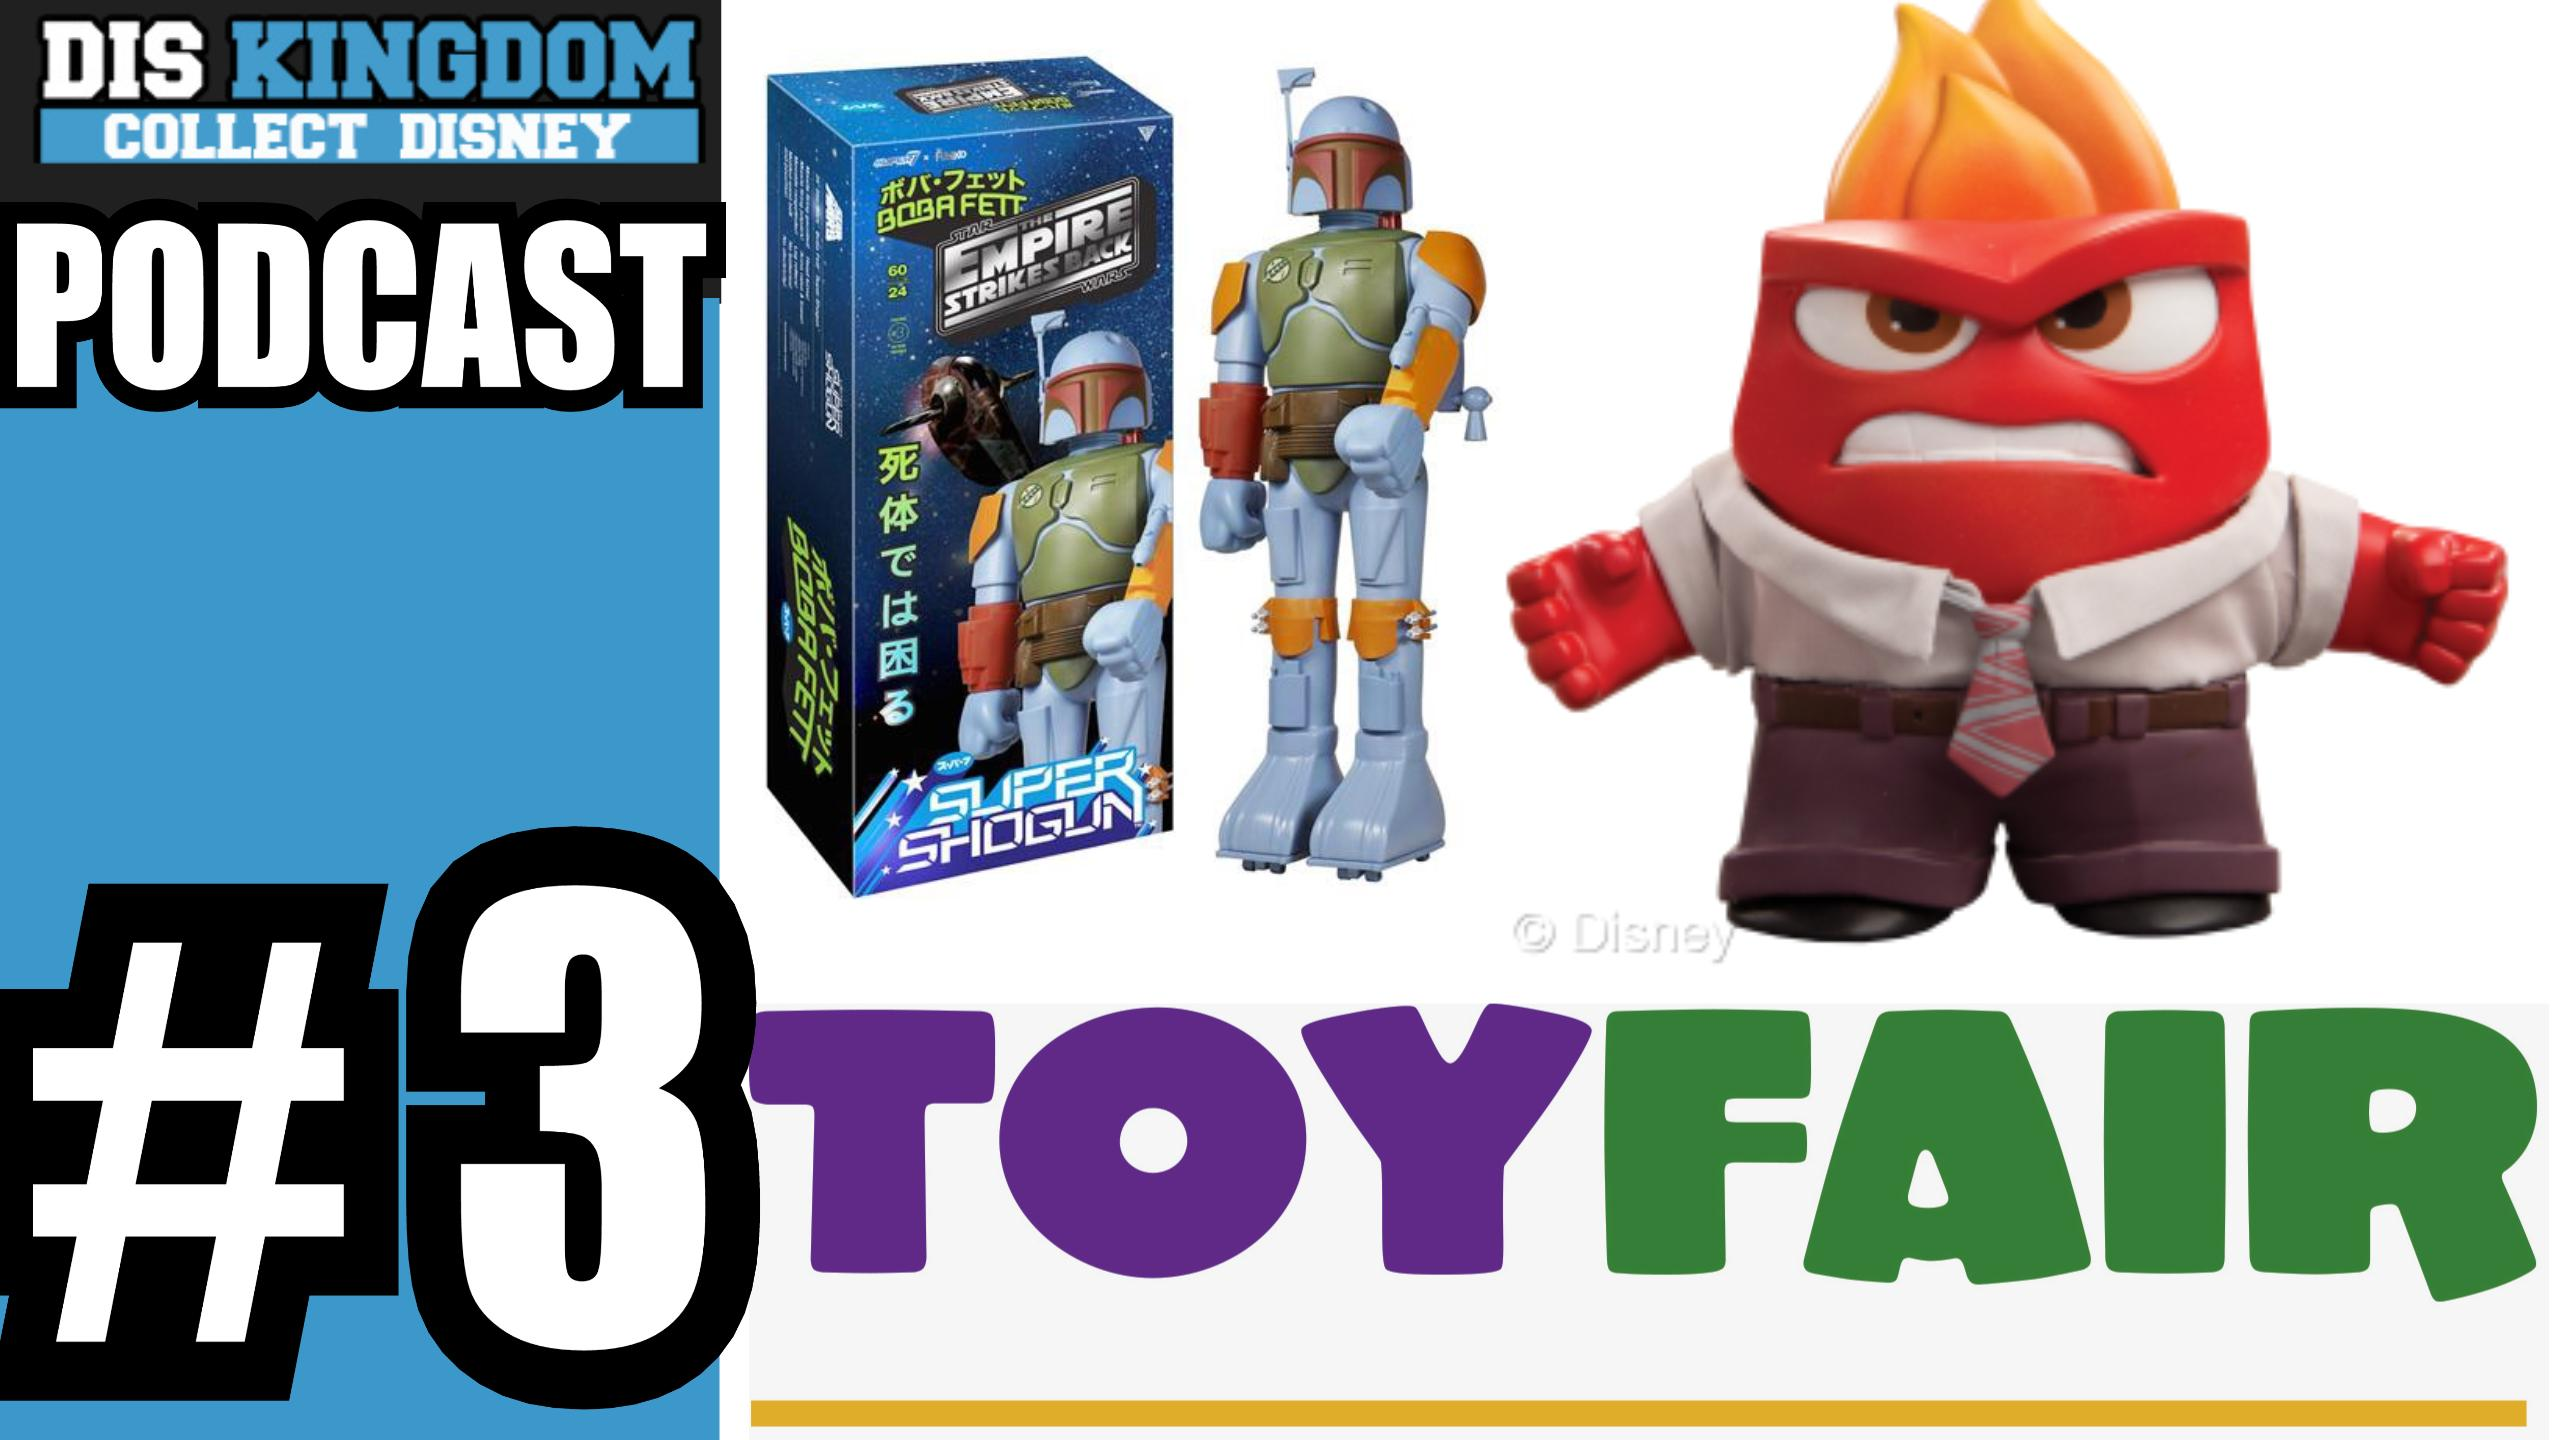 DisKingdom.com – Collect Disney Podcast #3 – Toy Fair Recap, Funko, Frozen Fever & Hawaii Vinylmations